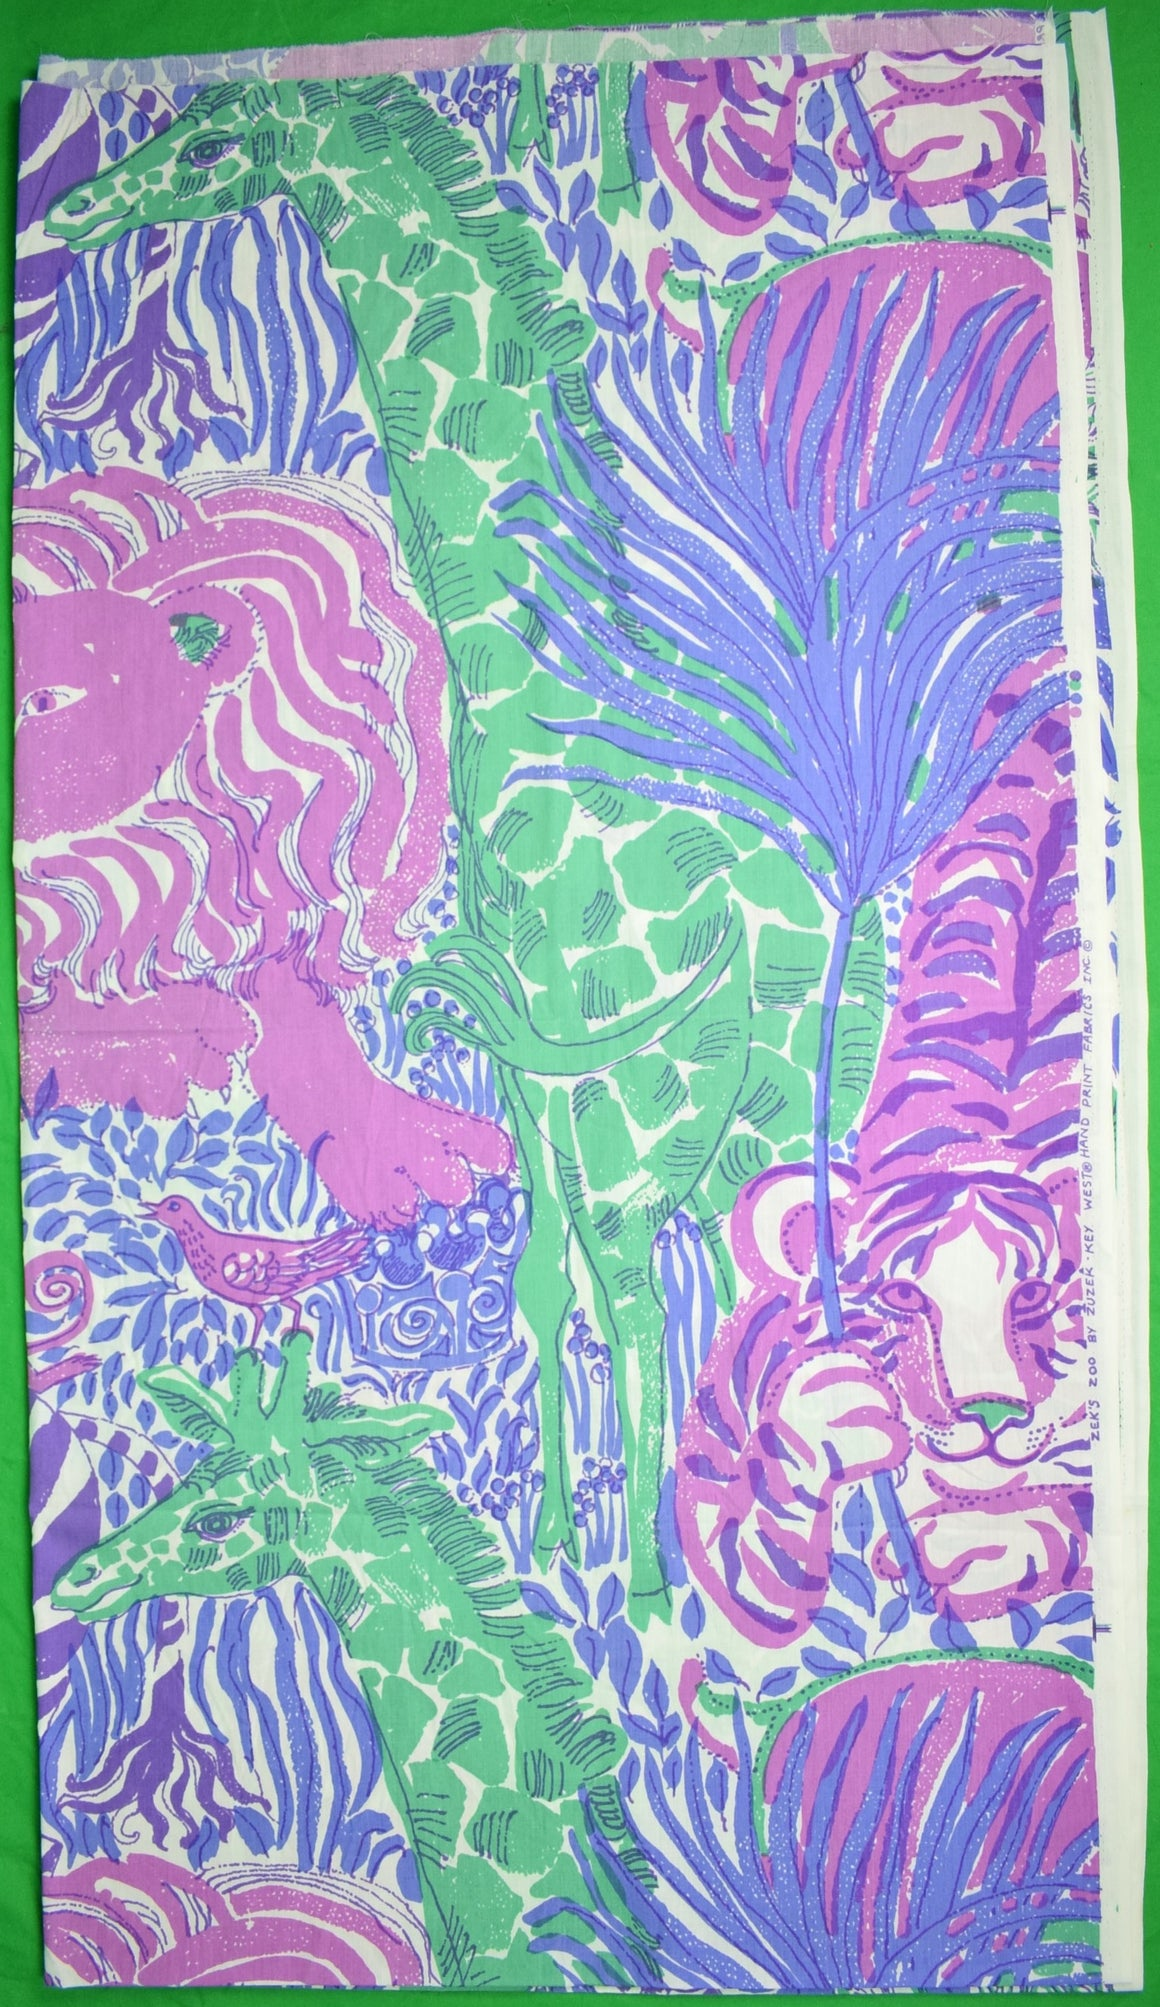 Zek's Zoo By Zuzek Key West Hand-Print c1960s Lilly Pulitzer Fabric (SOLD)